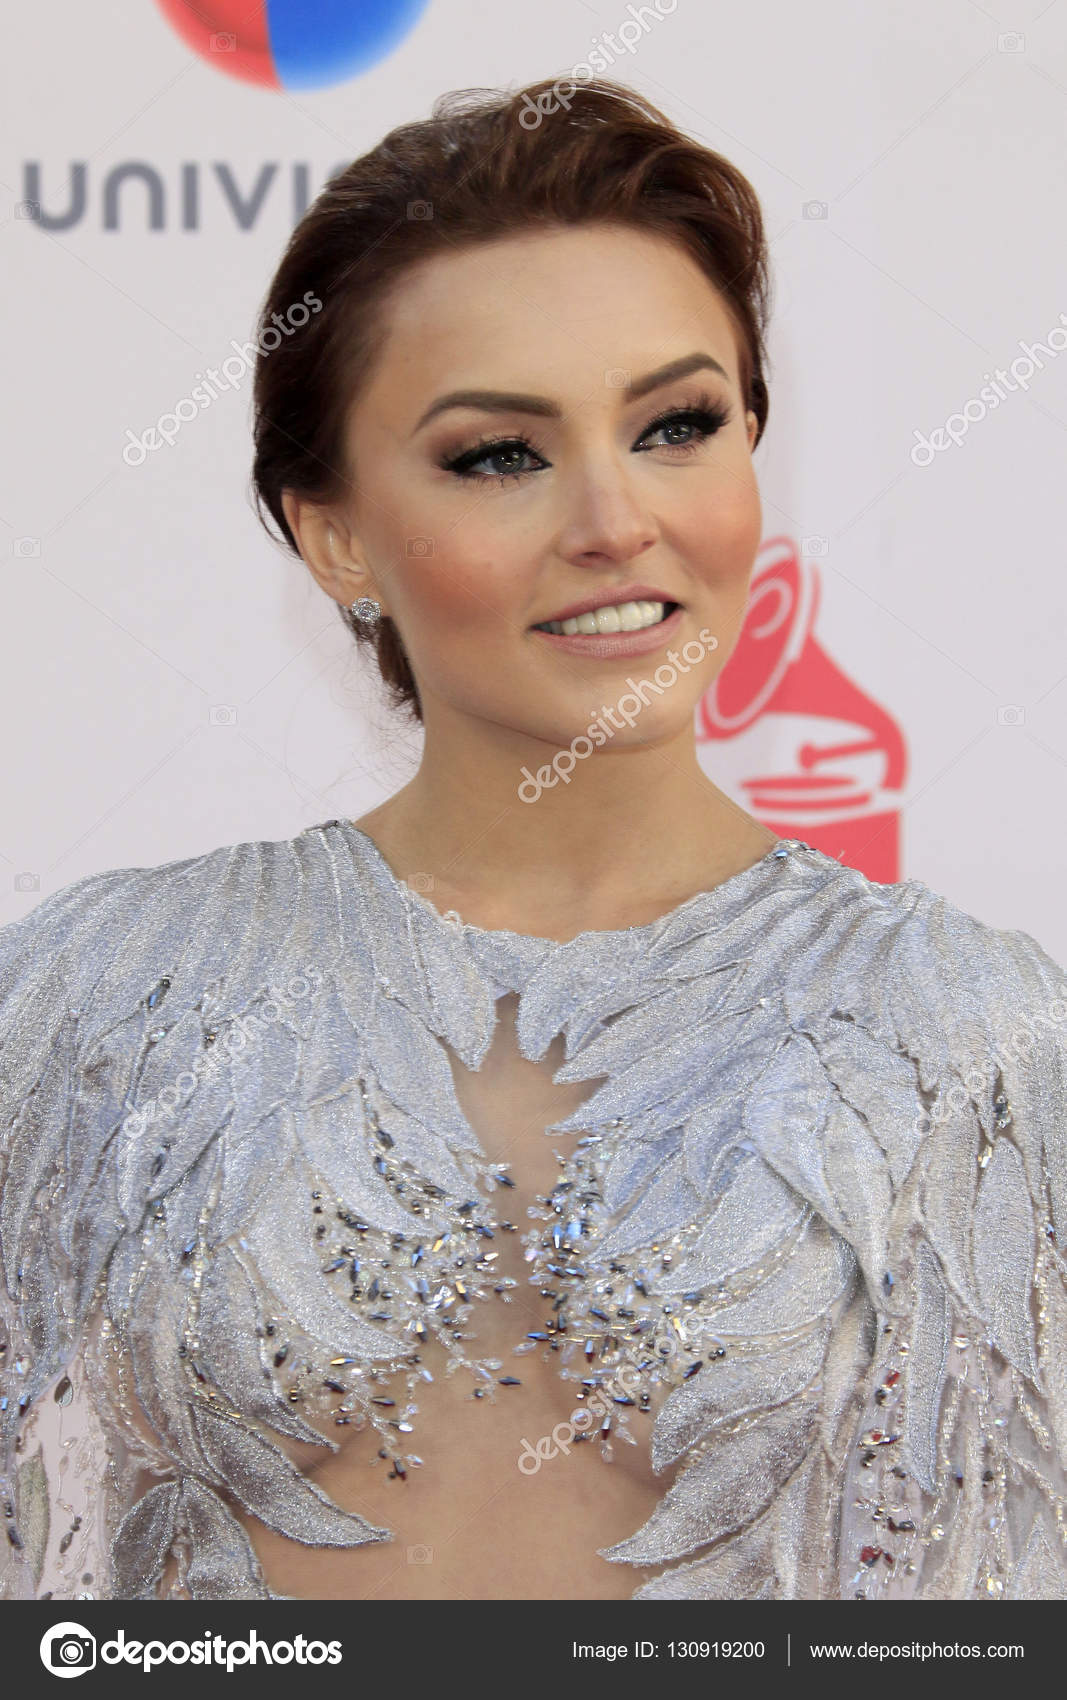 angelique boyer naked pictures